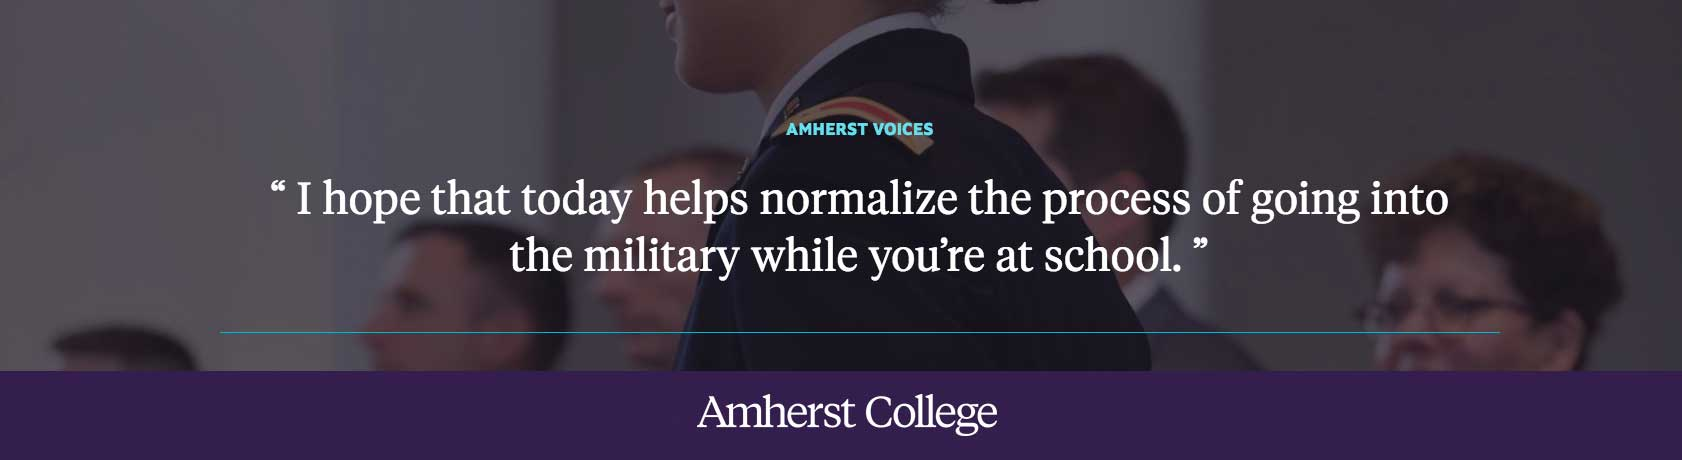 "Rebecca Segal: ""I hope that today helps normalize the process of going into the military while you're at school."""